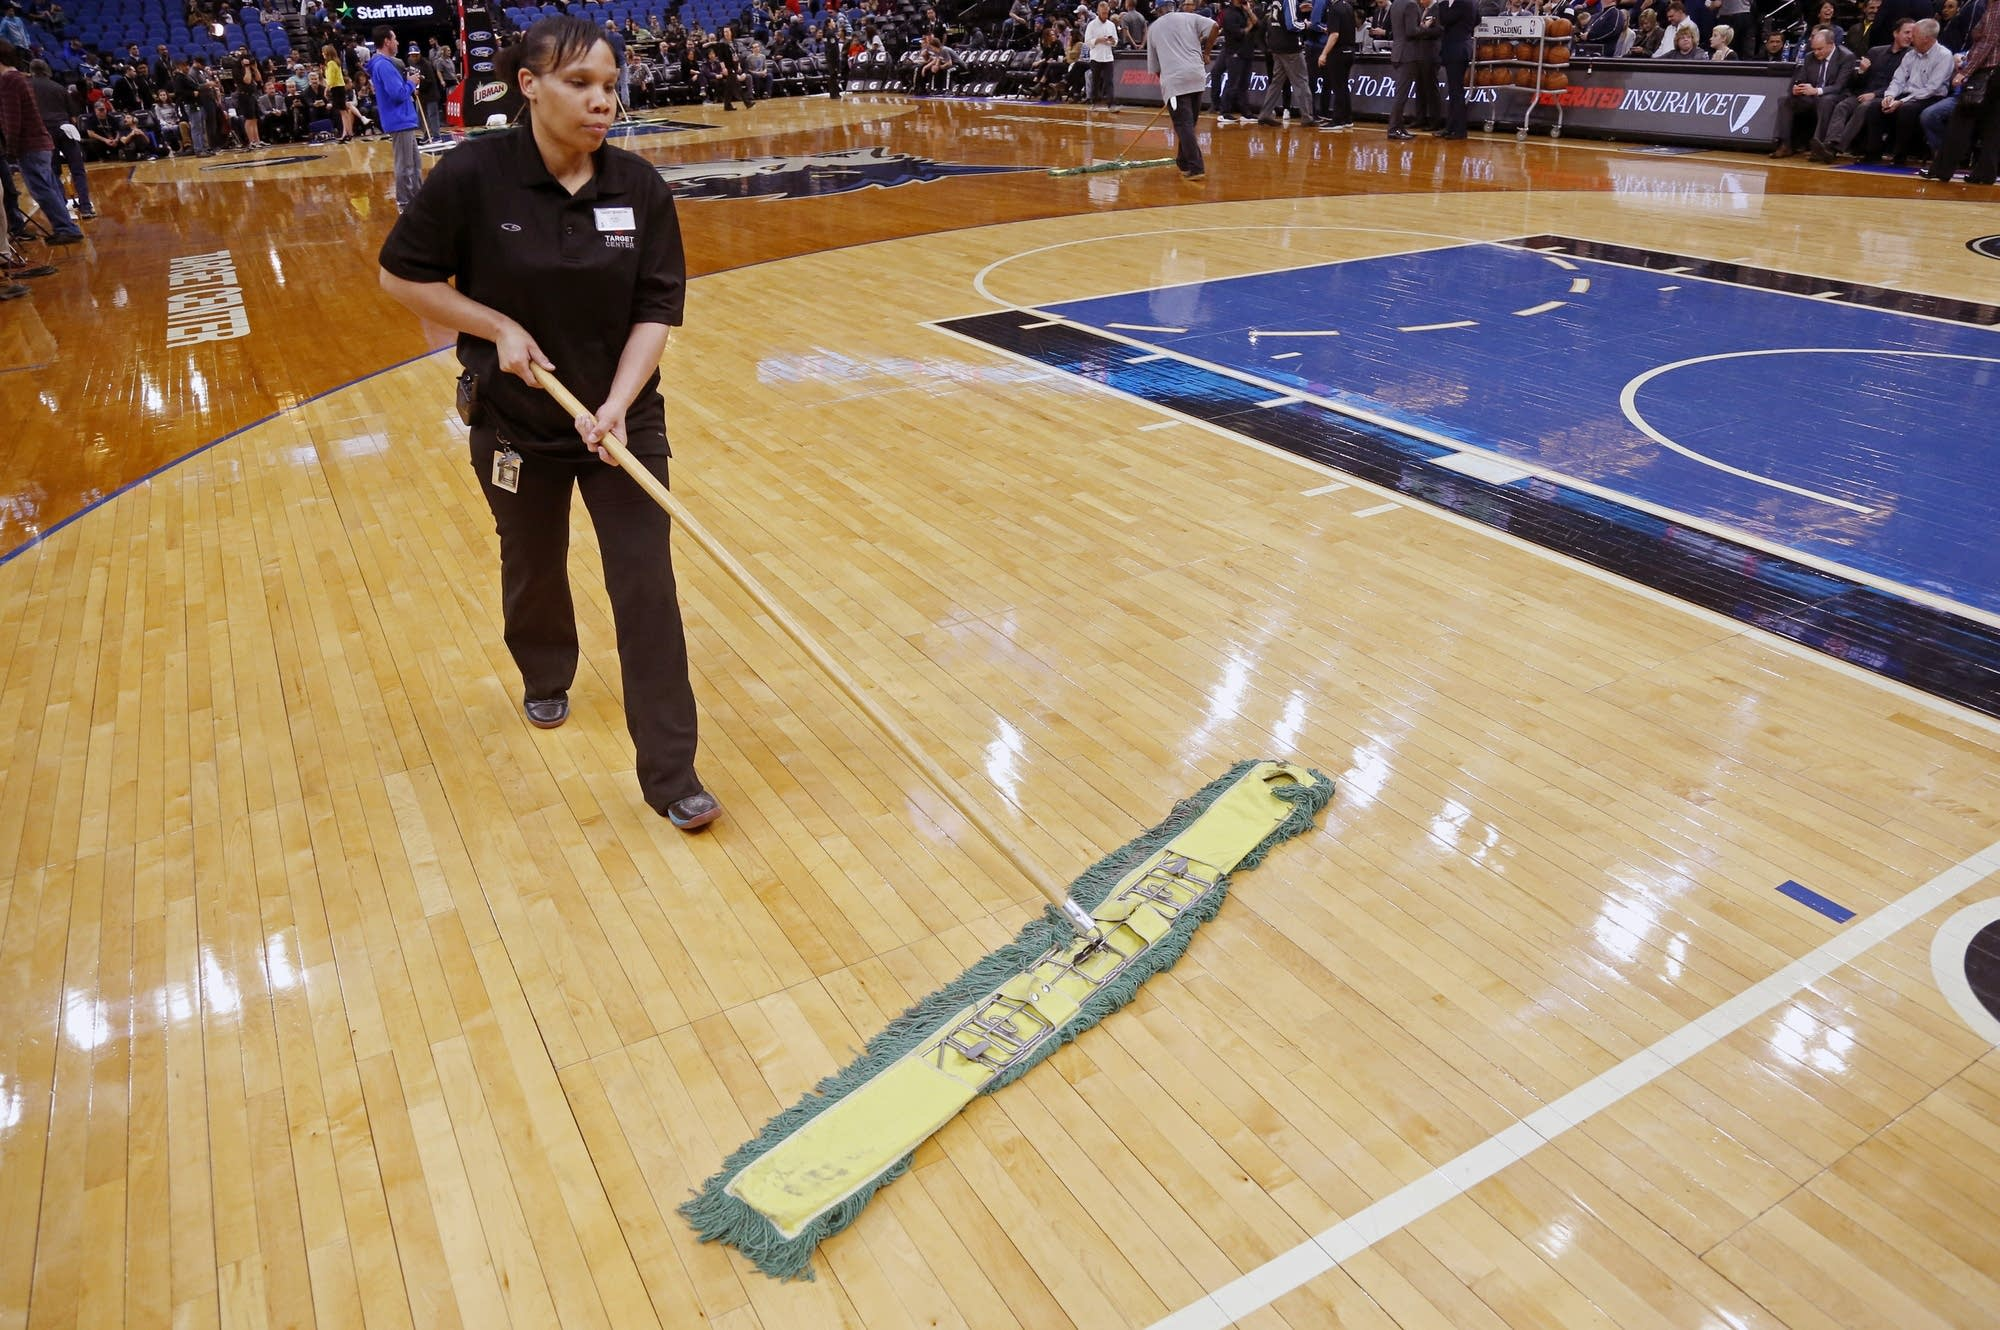 Trail Blazers Timberwolves Game Postponed By Slick Court